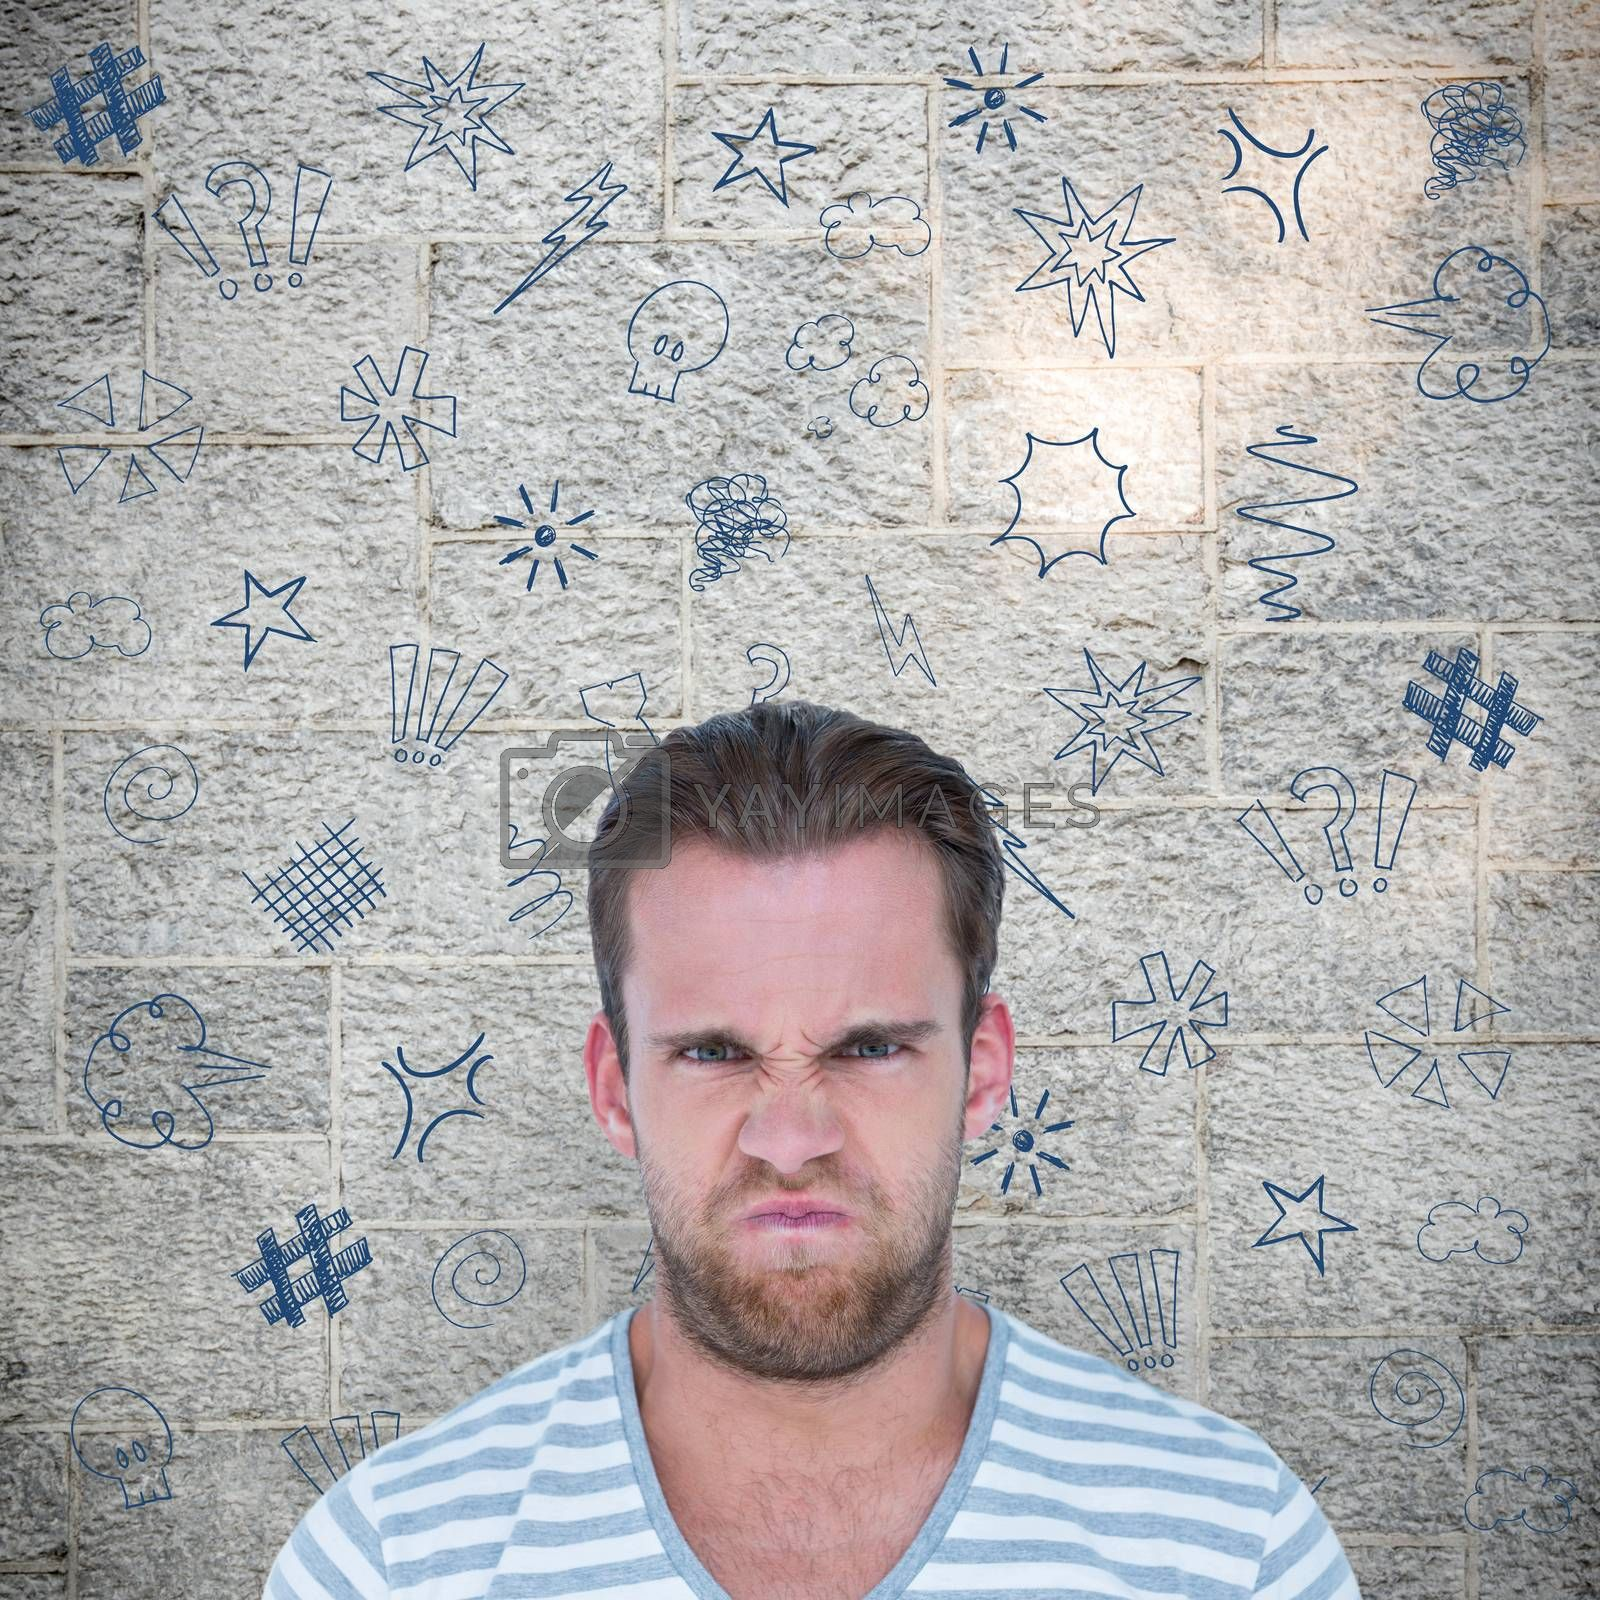 Angry man over white background against grey